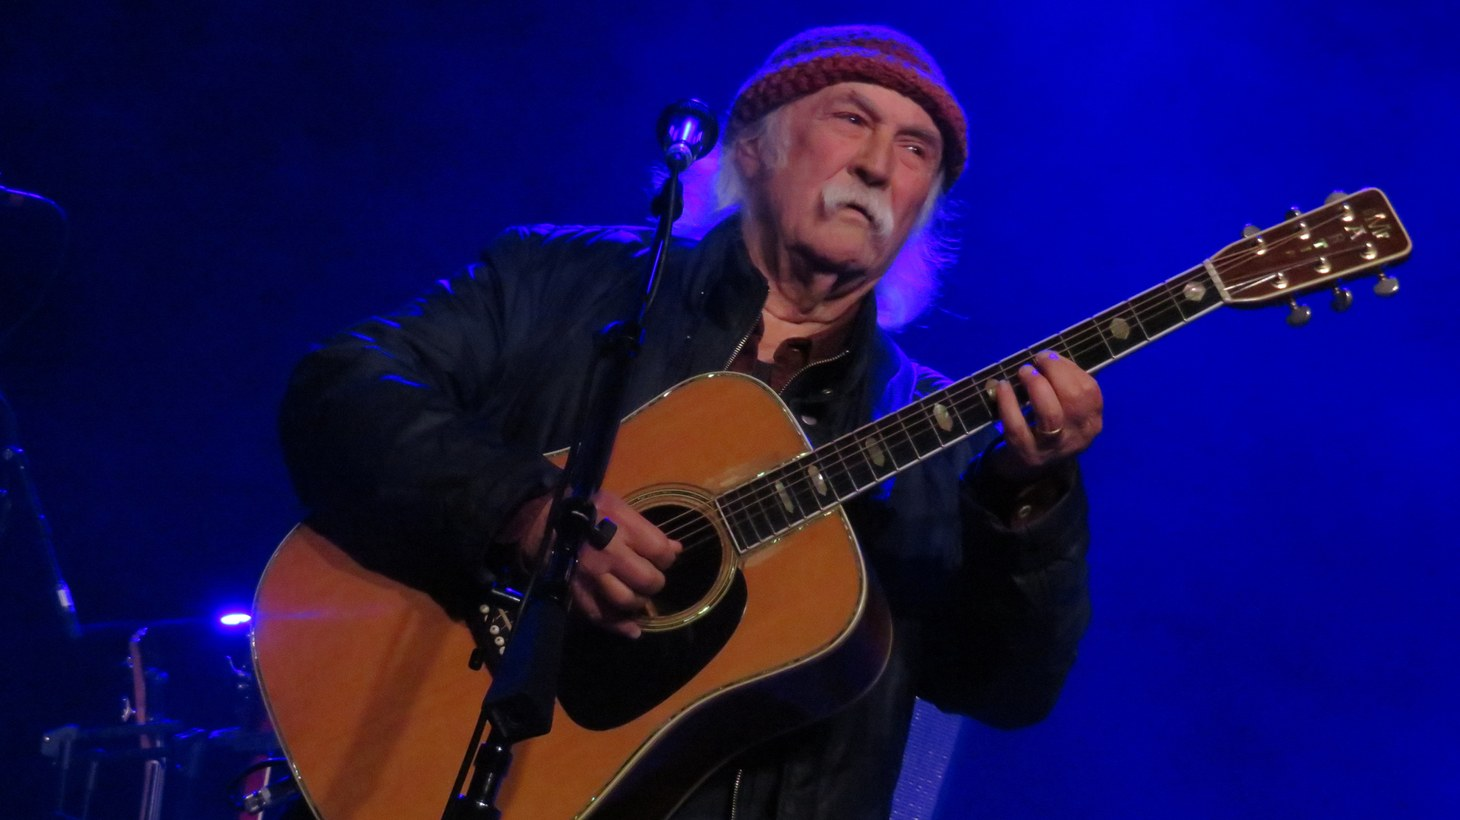 David Crosby performing live in Deurne, Belgium.